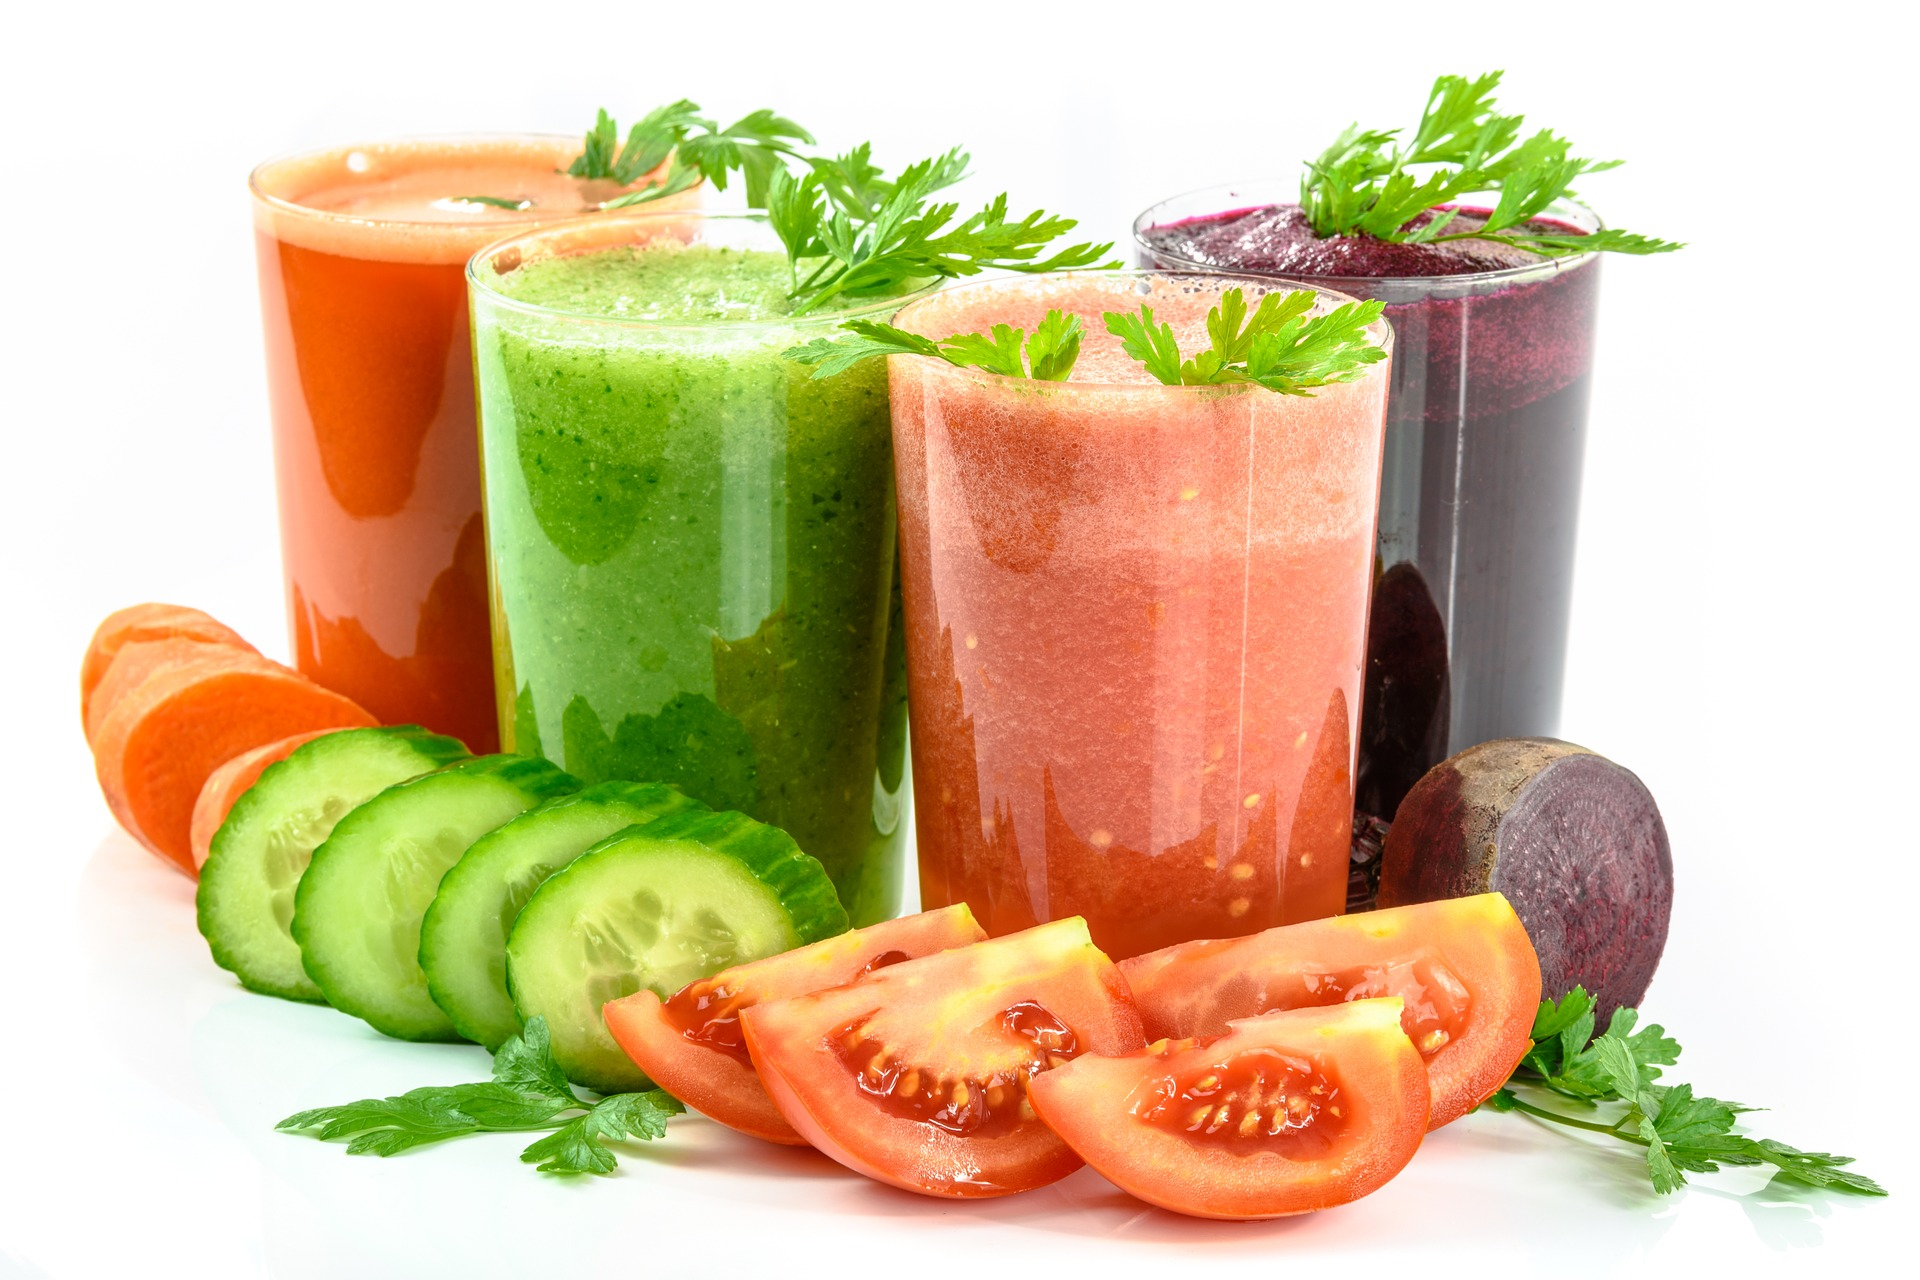 Fruit and Vegetable Juice by using Cold Press Juicer